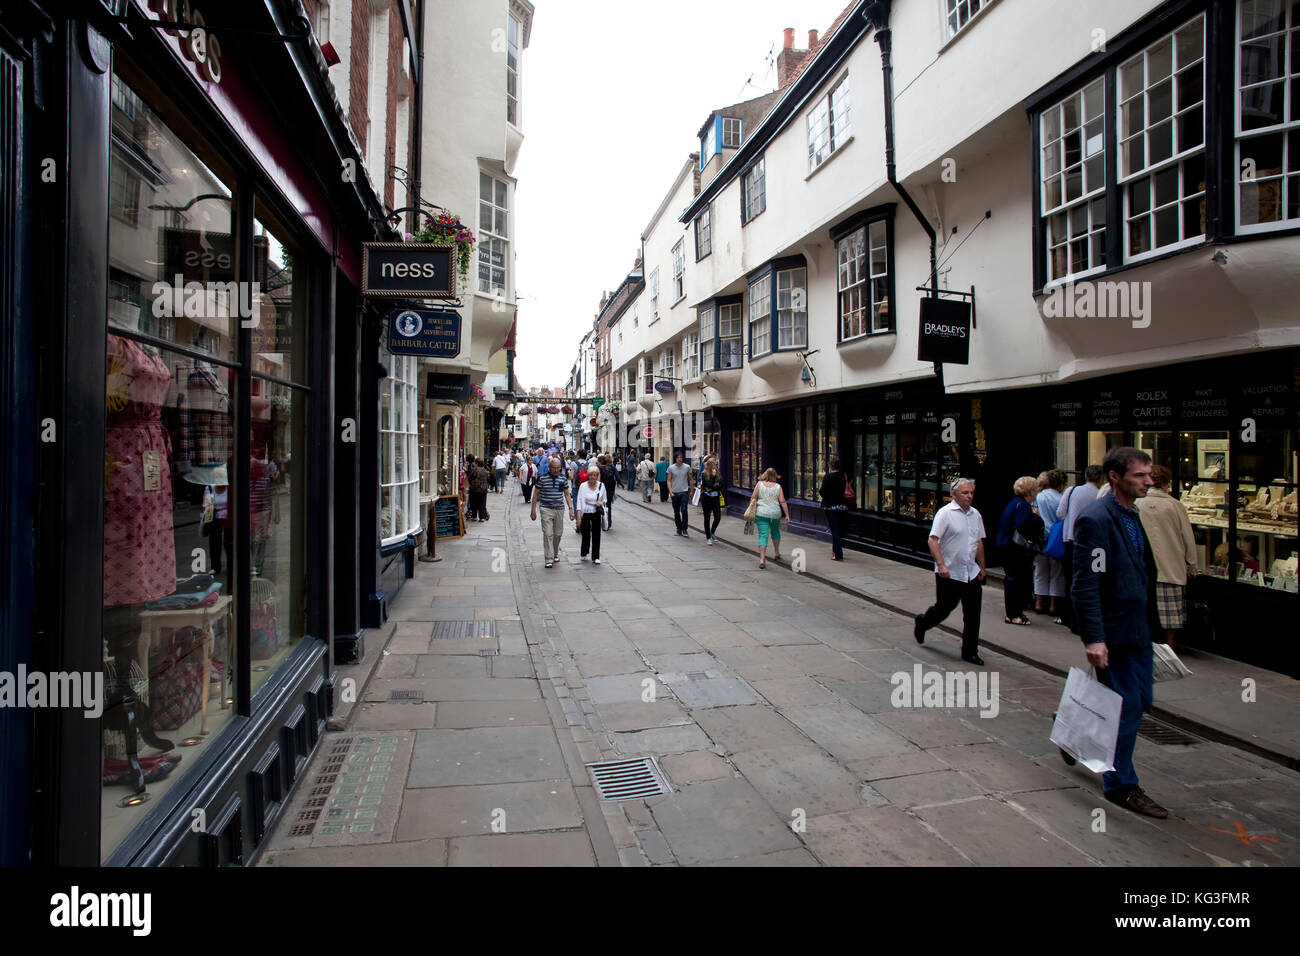 Tourists and shoppers in Stonegate, York City, England - Stock Image